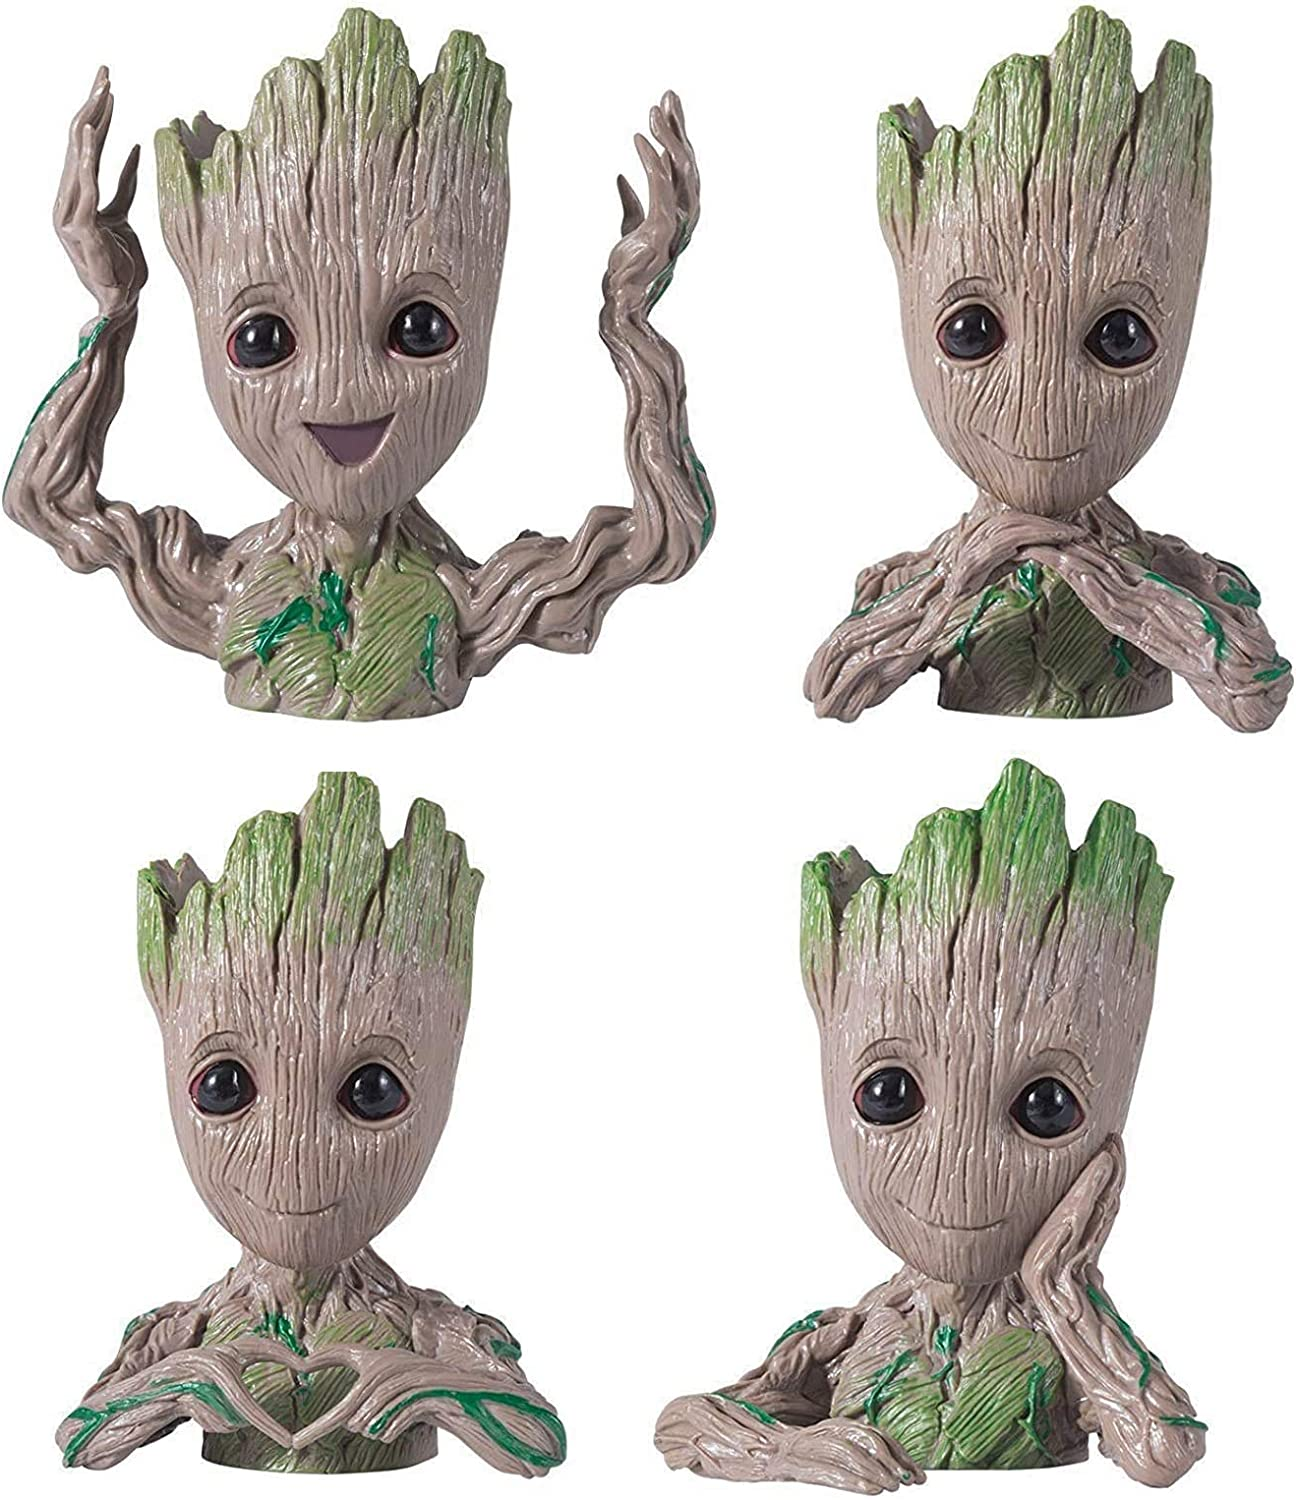 4 in 1 Baby Groot Succulent Planters - Small Indoor Flower Pots for Plants & Succulents with Drainage Hole, Cute Office Desk Decor Planters & Pen Holders for Succulents Plants Lovers